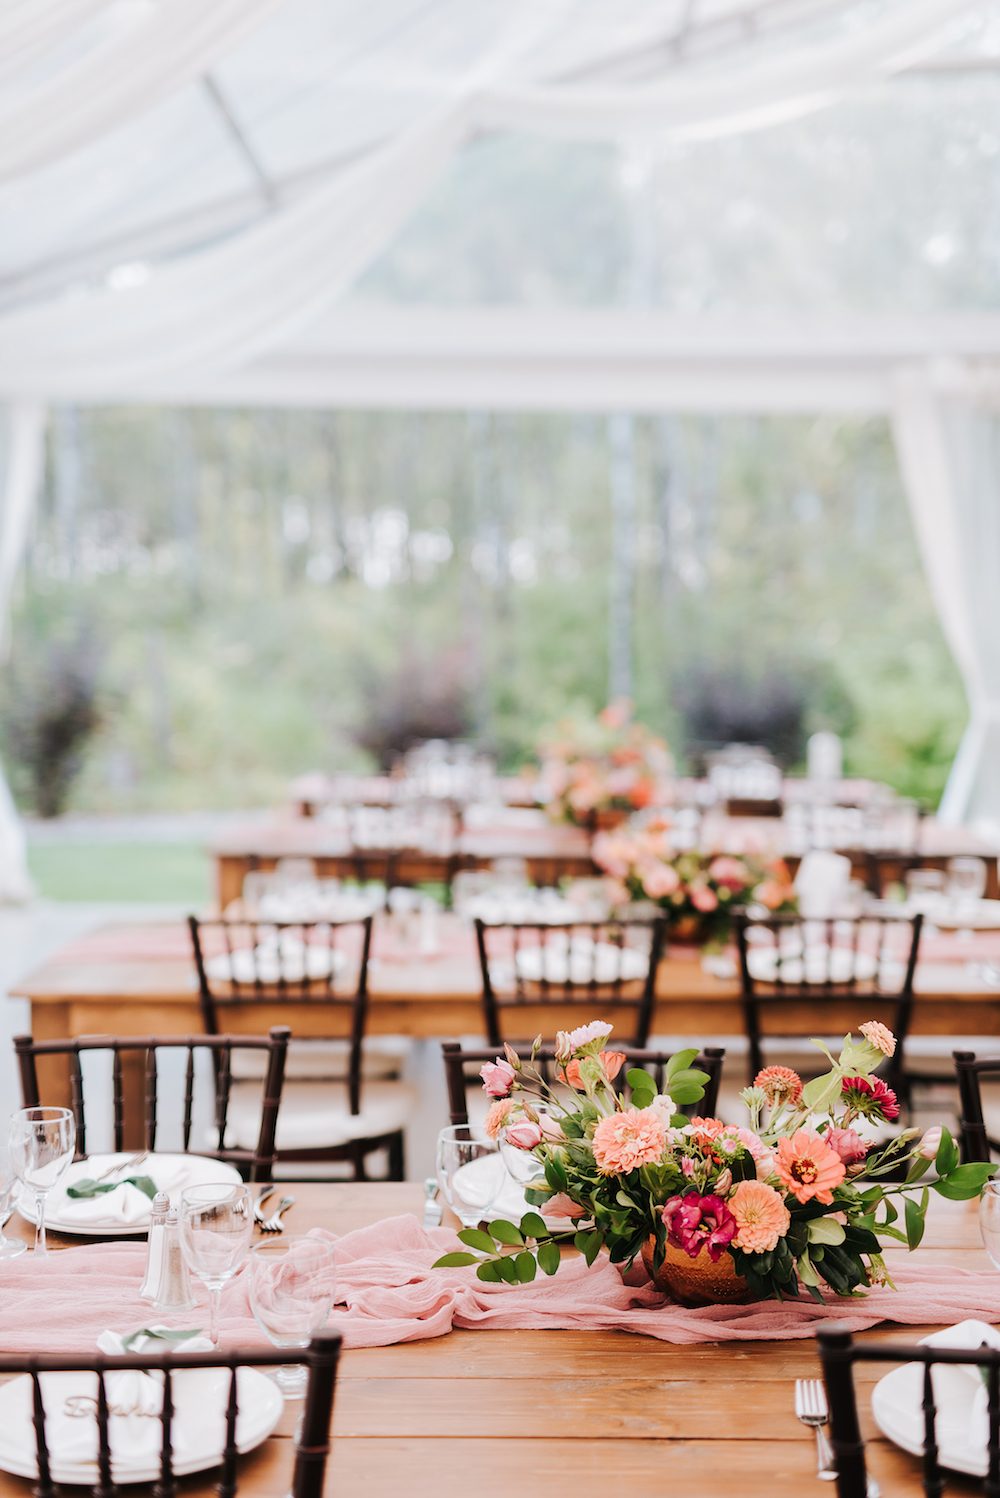 Wedding and Event Designer in Winnipeg - Best Wedding Vendors in Winnipeg